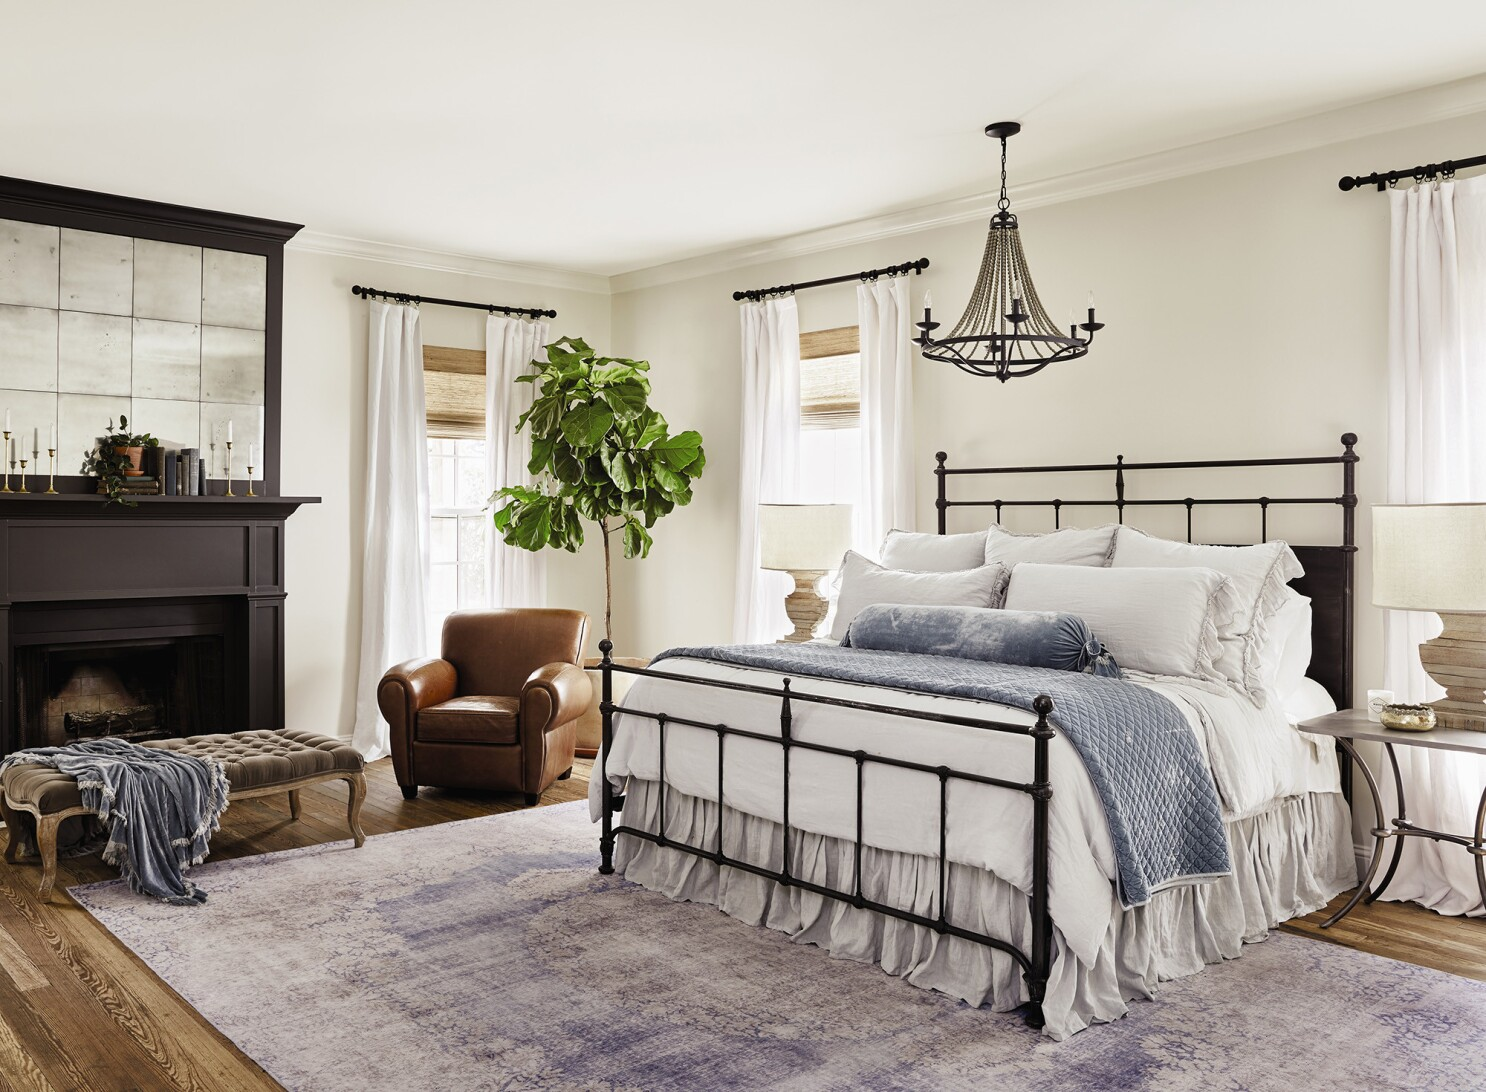 7 Dreamy Bedroom Tips From Professional Homebody Joanna Gaines Los Angeles Times